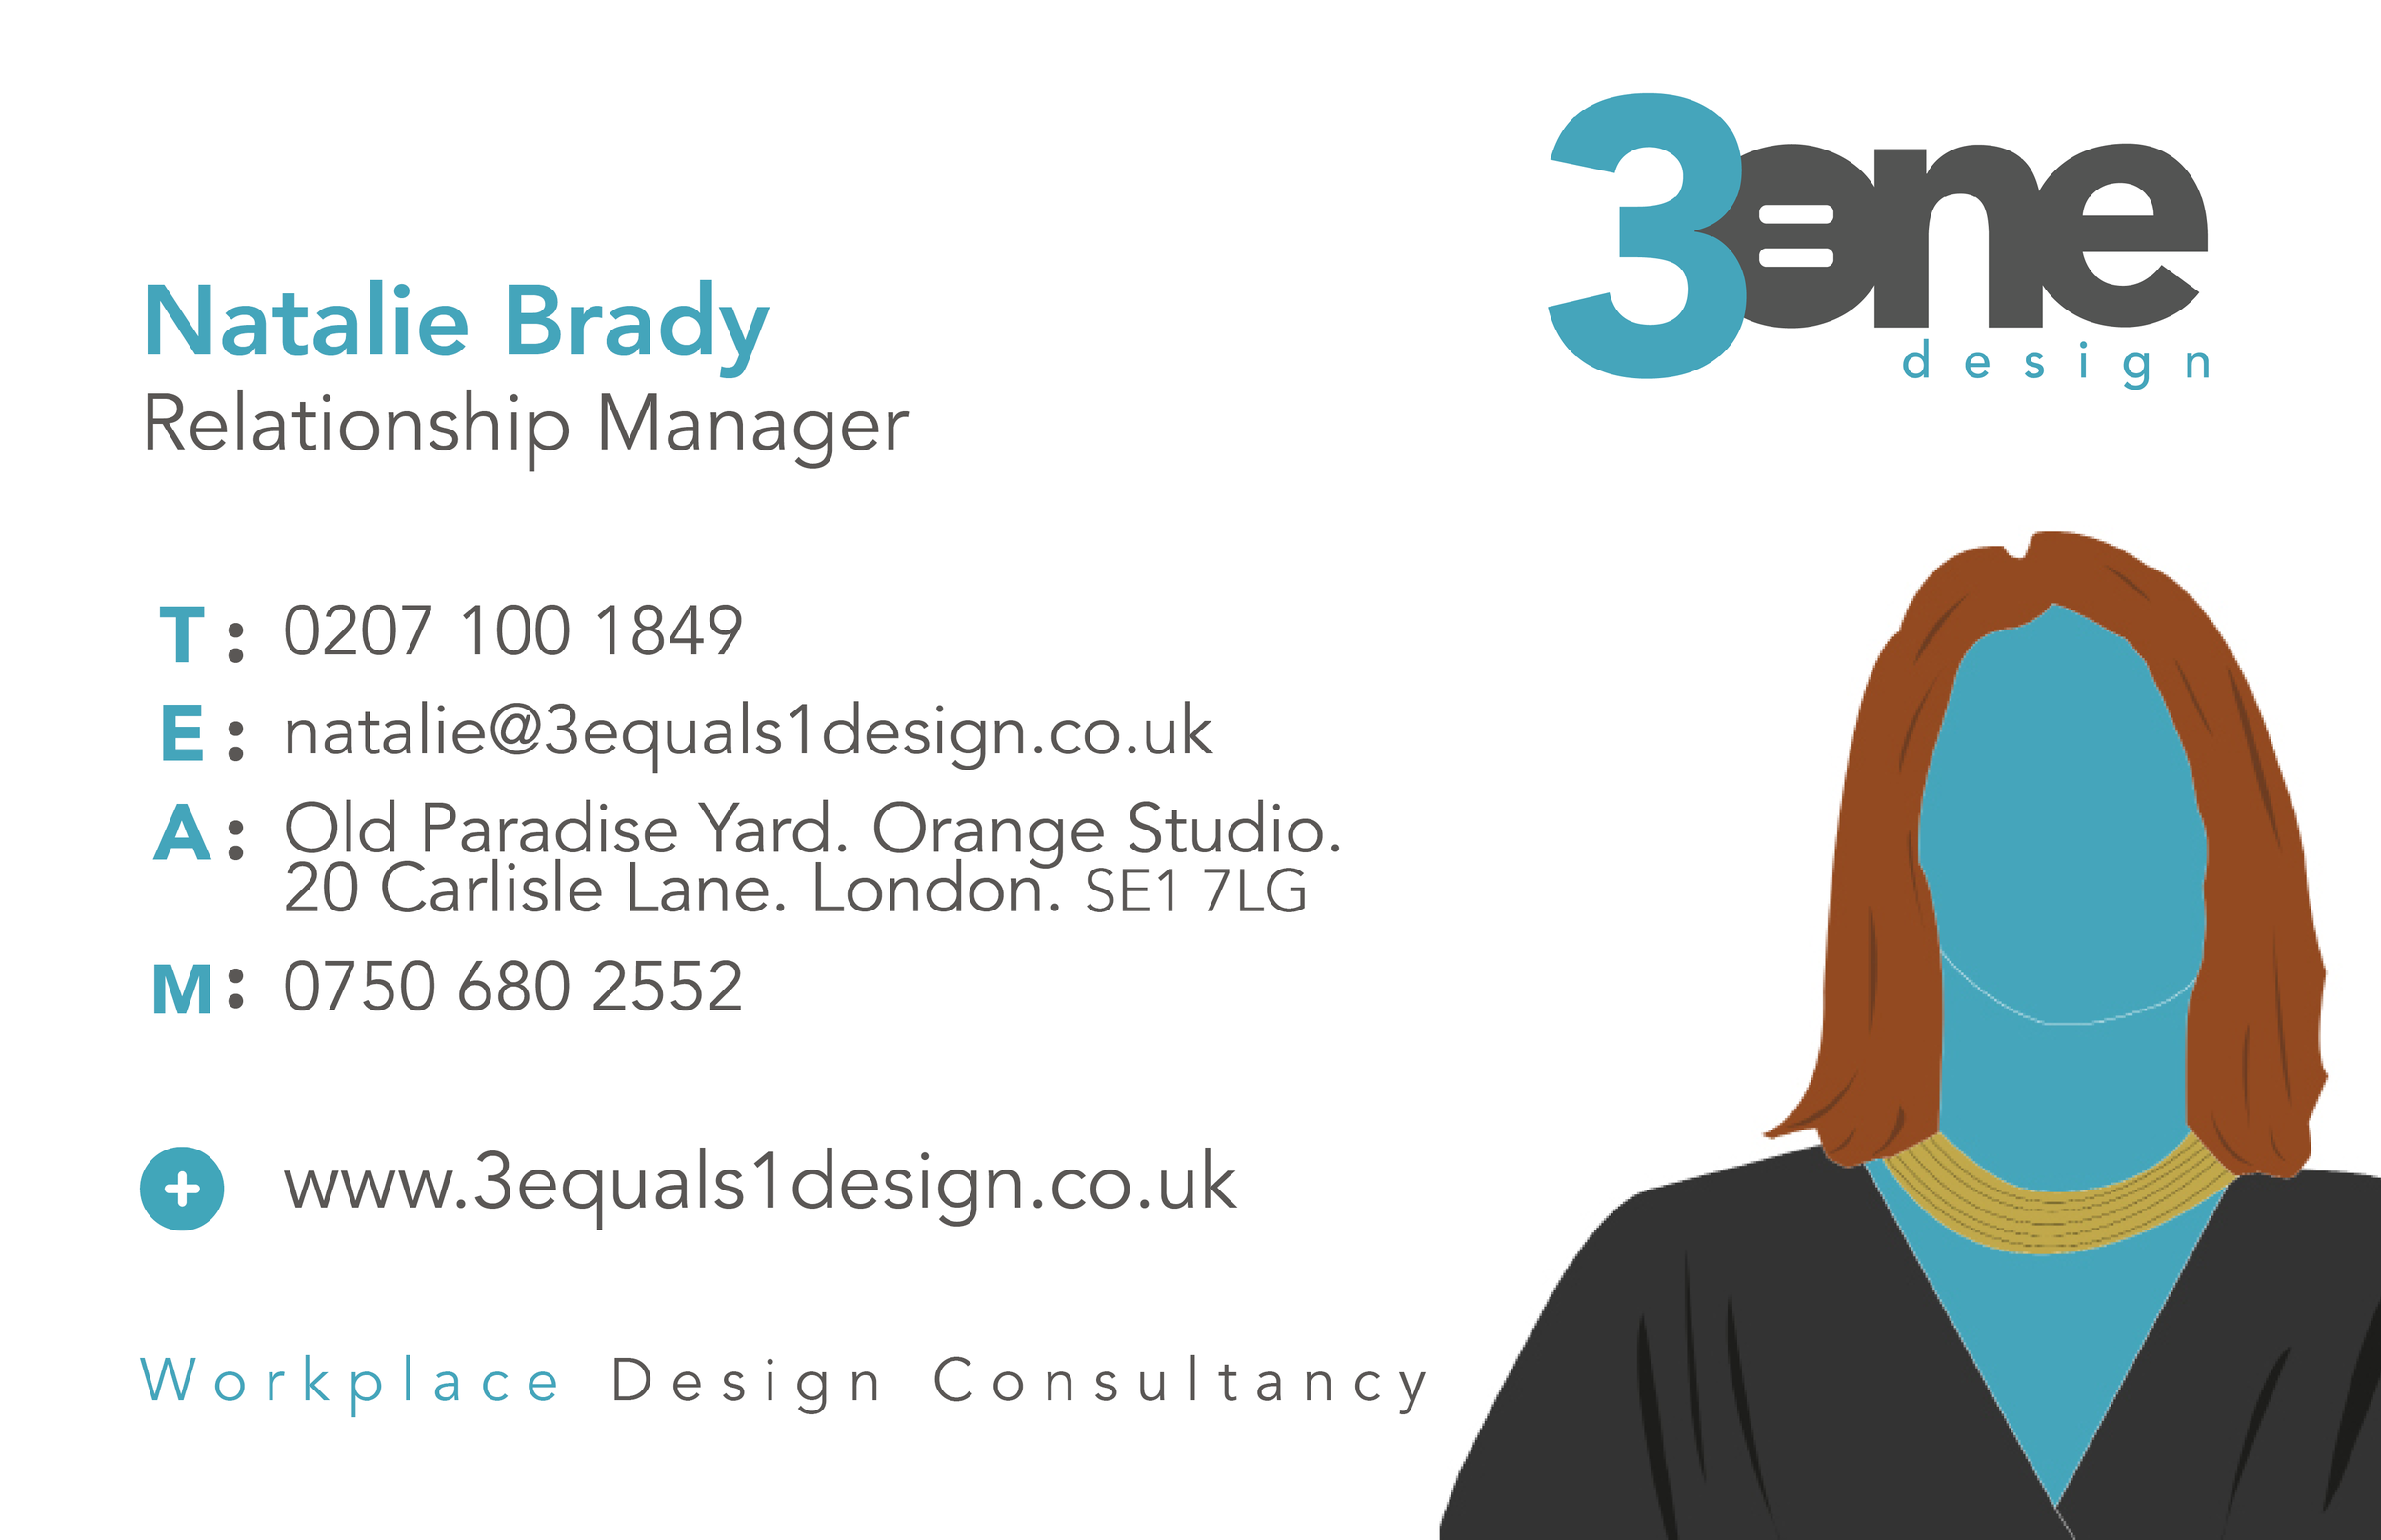 Get in touch with Natalie - Natalie is our Business Development manager. If you have any questions about the content of our first quarterly News Bulletin get in touch with her. You can reach Natalie on 07506 802552 or by email: natalie@3equals1design.co.uk